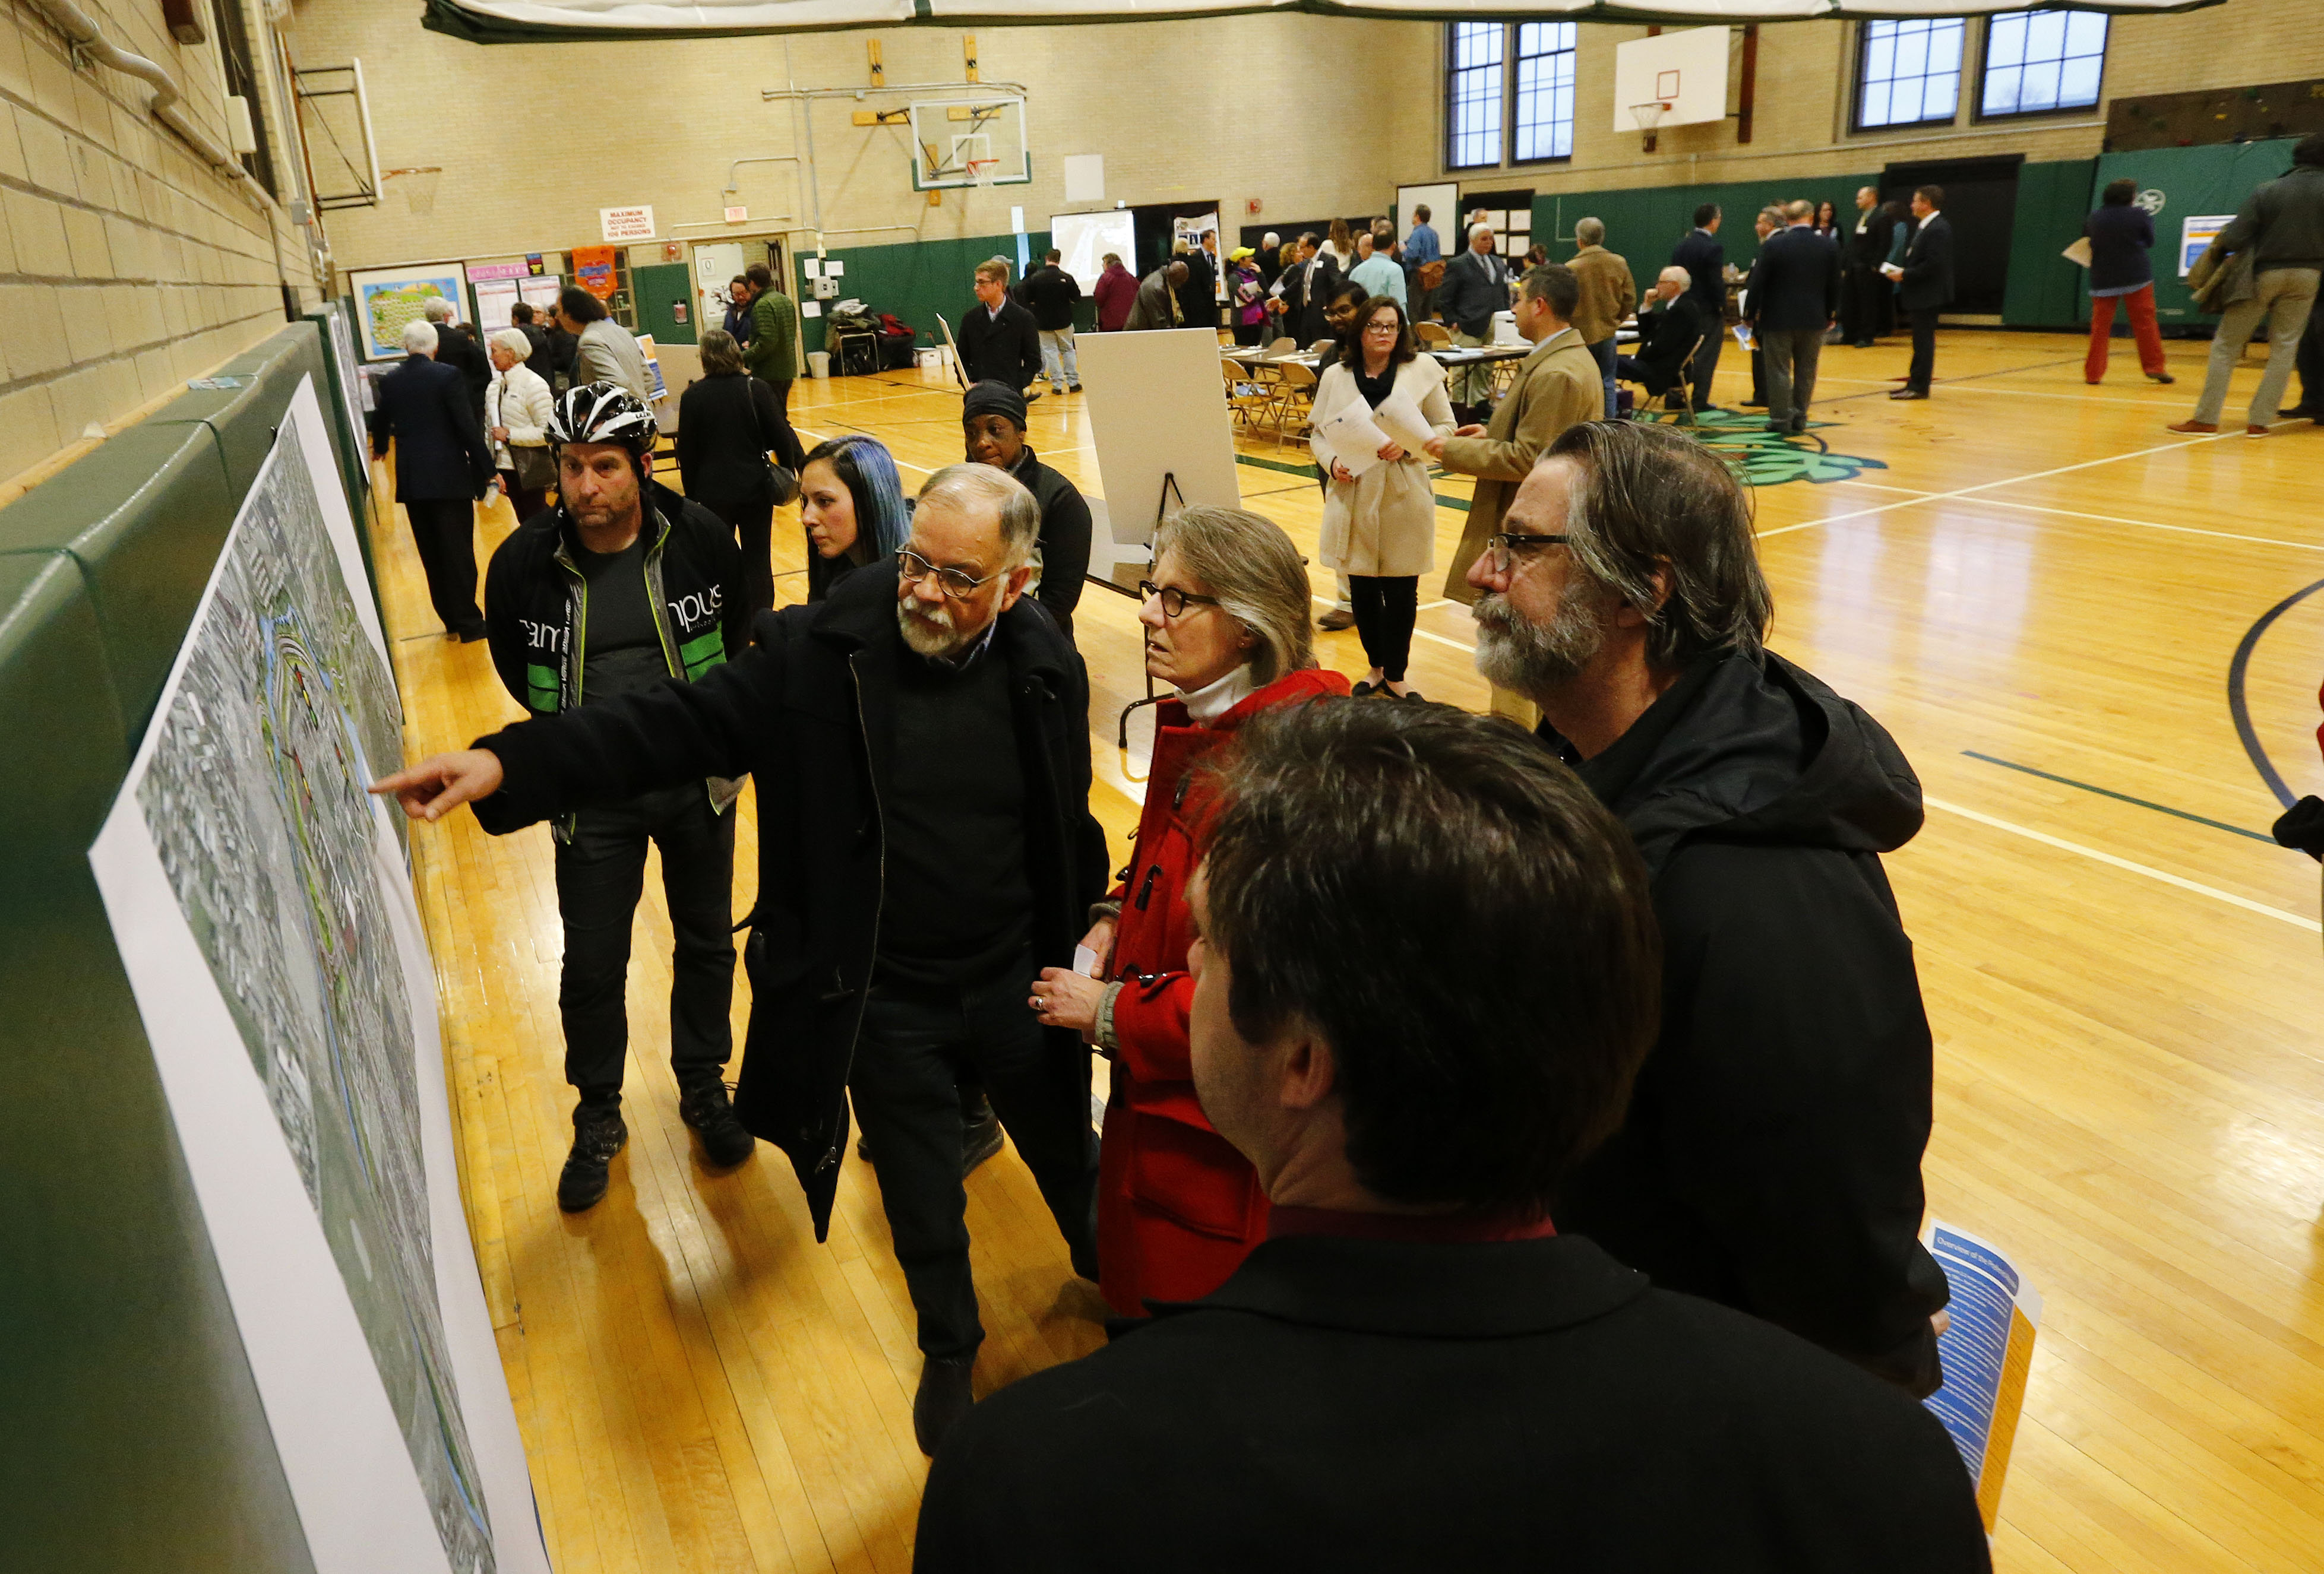 Residents look over the State Department of Transportation's proposals for converting the Scajaquada from a highway to a 30 mile per hour road  before a hearing at the Olmsted school in Buffalo Wednesday, January 25, 2017.  (Mark Mulville/The Buffalo News)